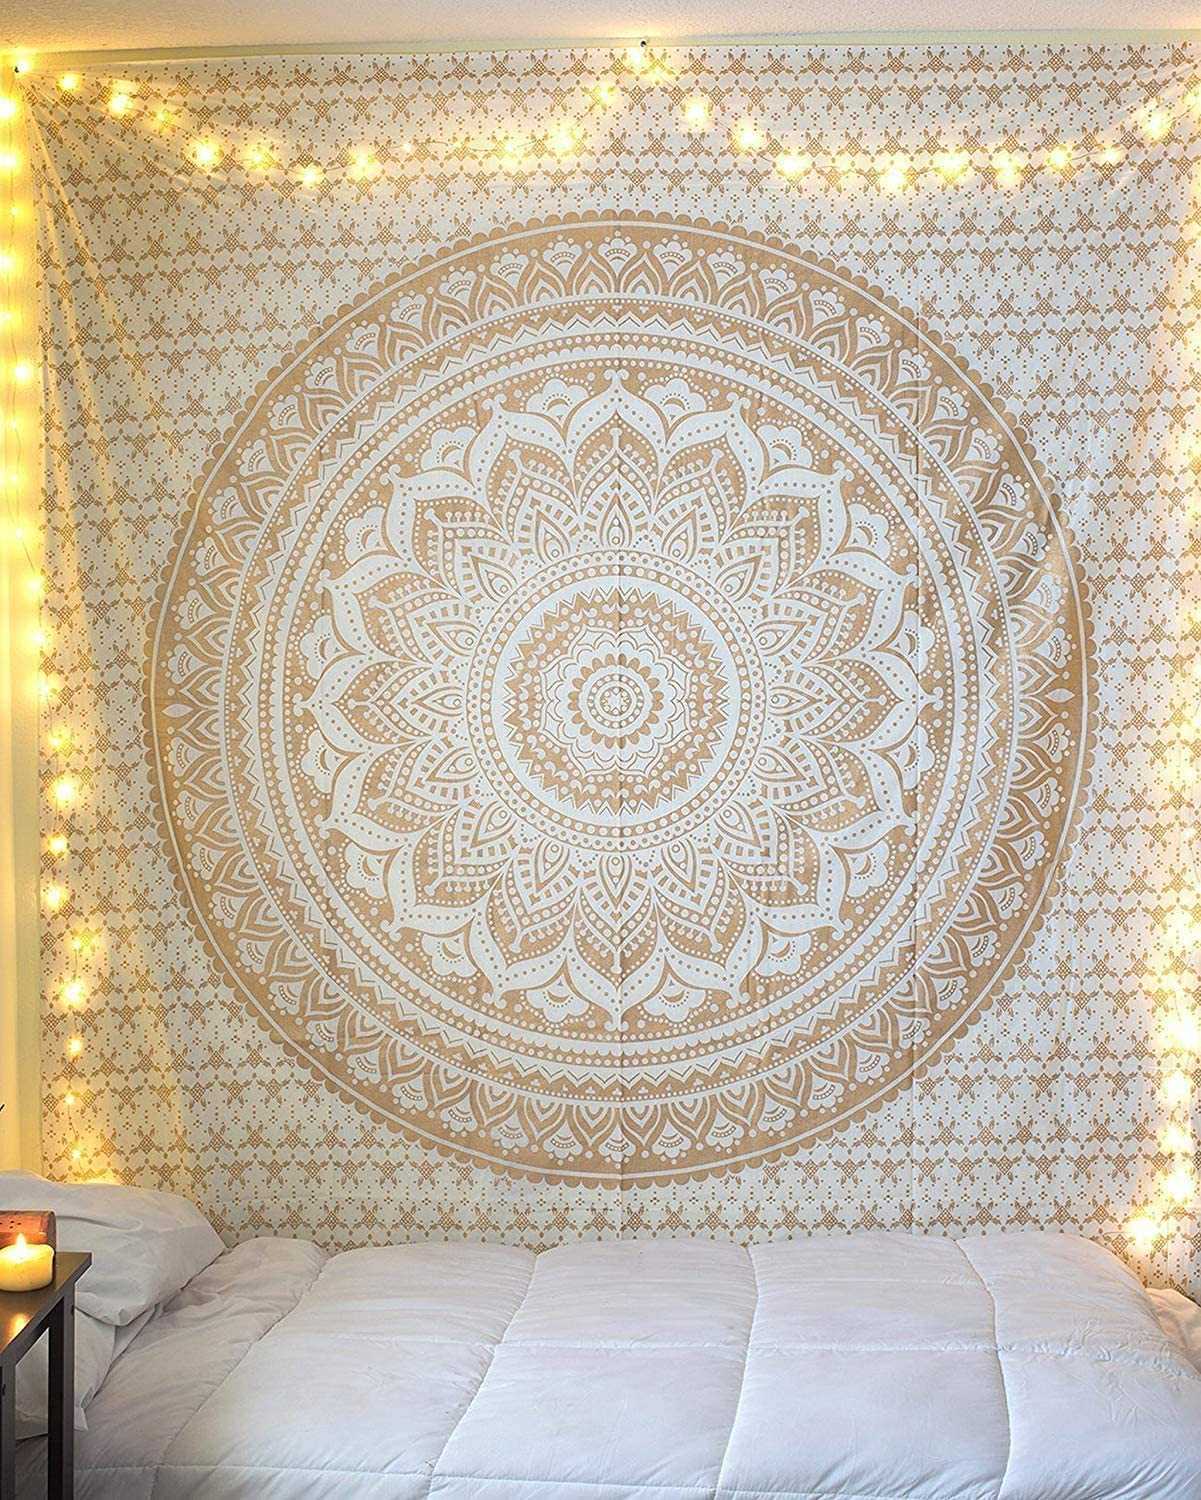 ANJANIYA New Gold Ombre Tapestry Wall Hanging Indian Tapestry Dorm Decor Mandala Tapestry Metallic Hippy Wall Art Psychedelic Hippie Wall Hanging Bohemian Decor (Gold, 85